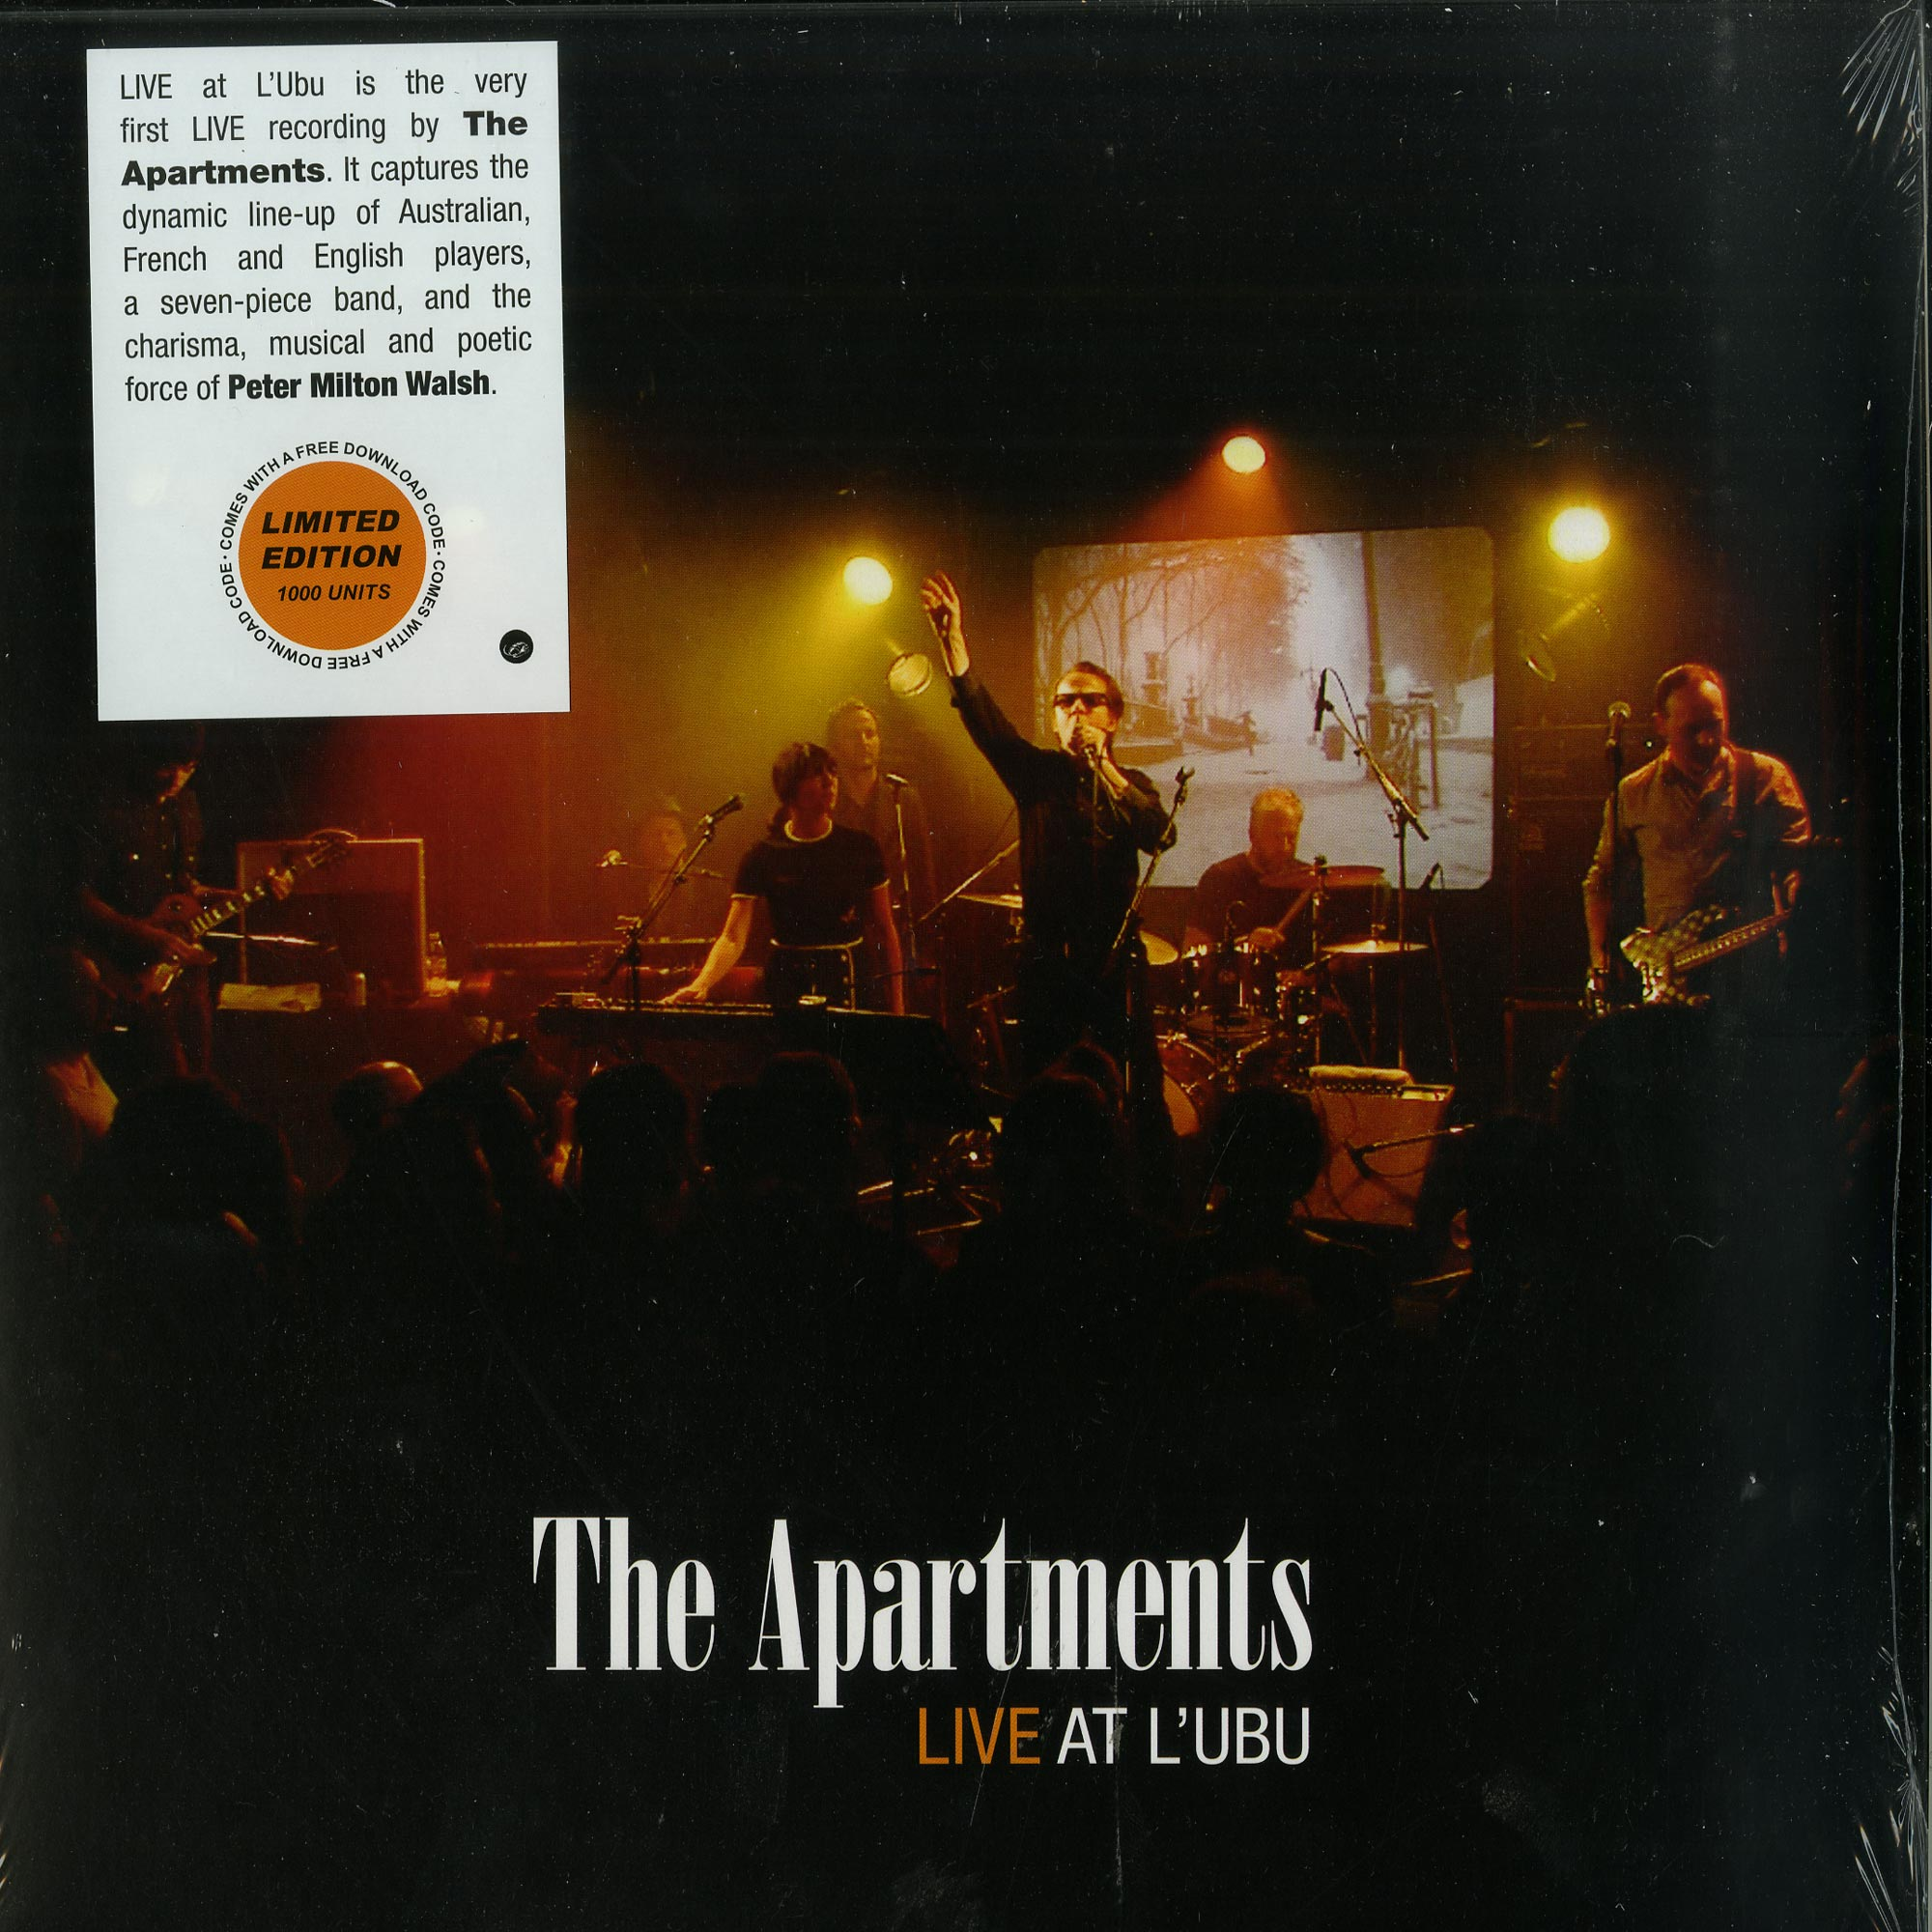 The Apartments - LIVE AT LUBU